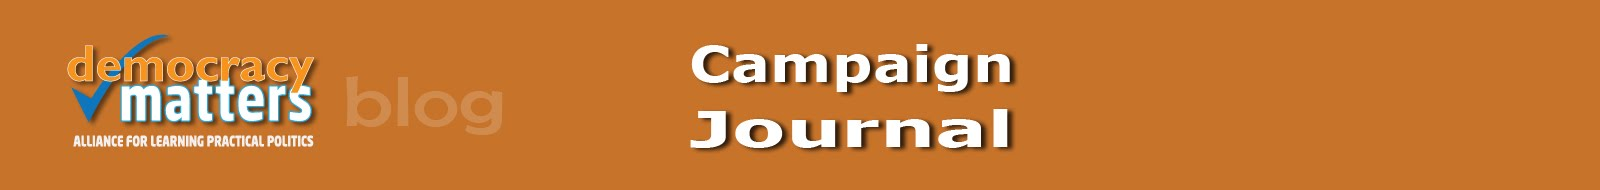 Democracy Matters - Campaign Journal